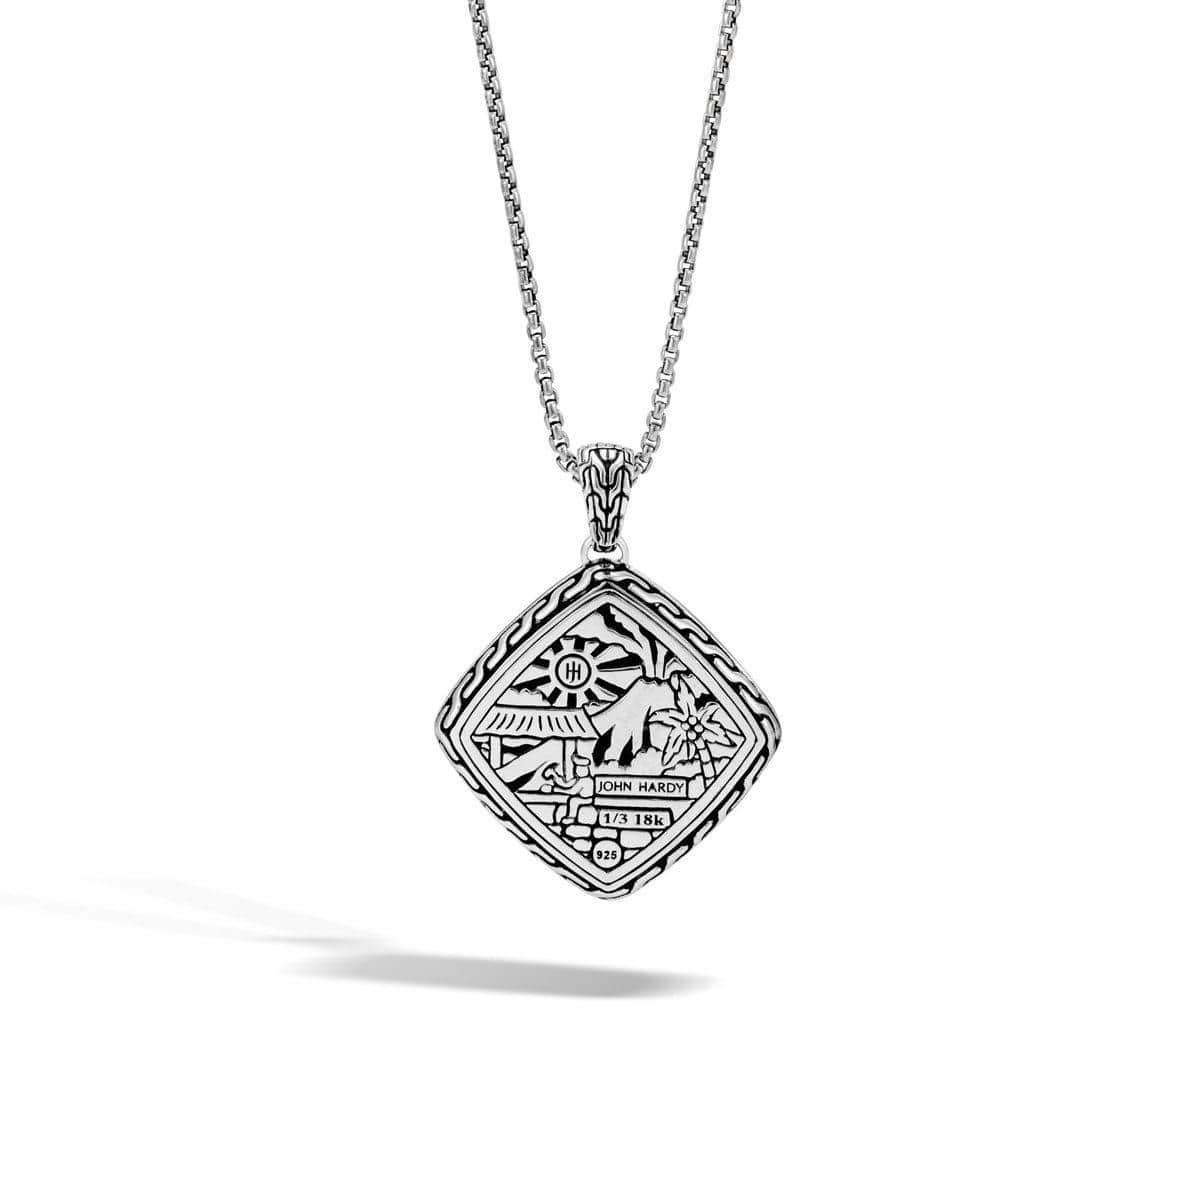 Classic Chain Hammered Pendant - NZ96154-John Hardy-Renee Taylor Gallery